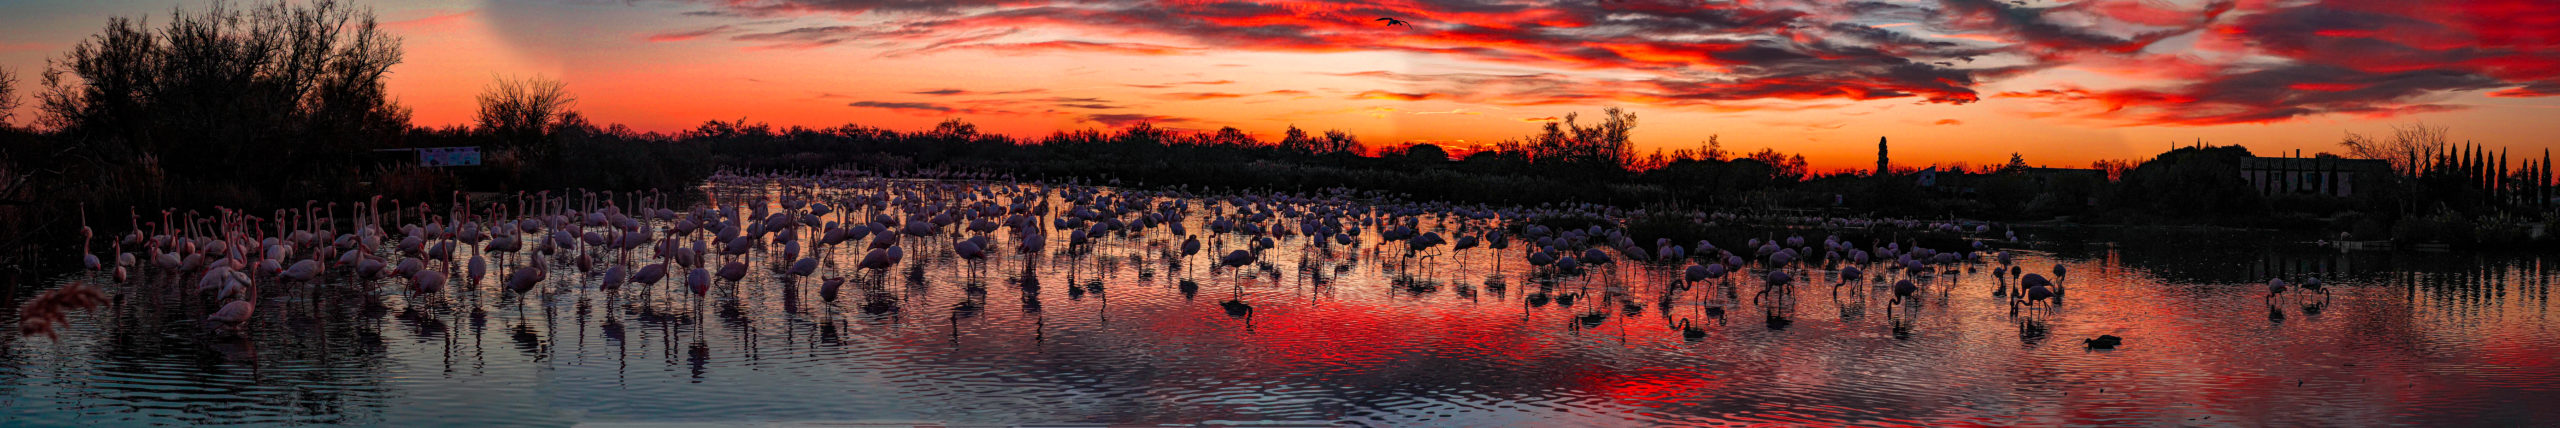 Panorama de flamants roses au coucher du soleil